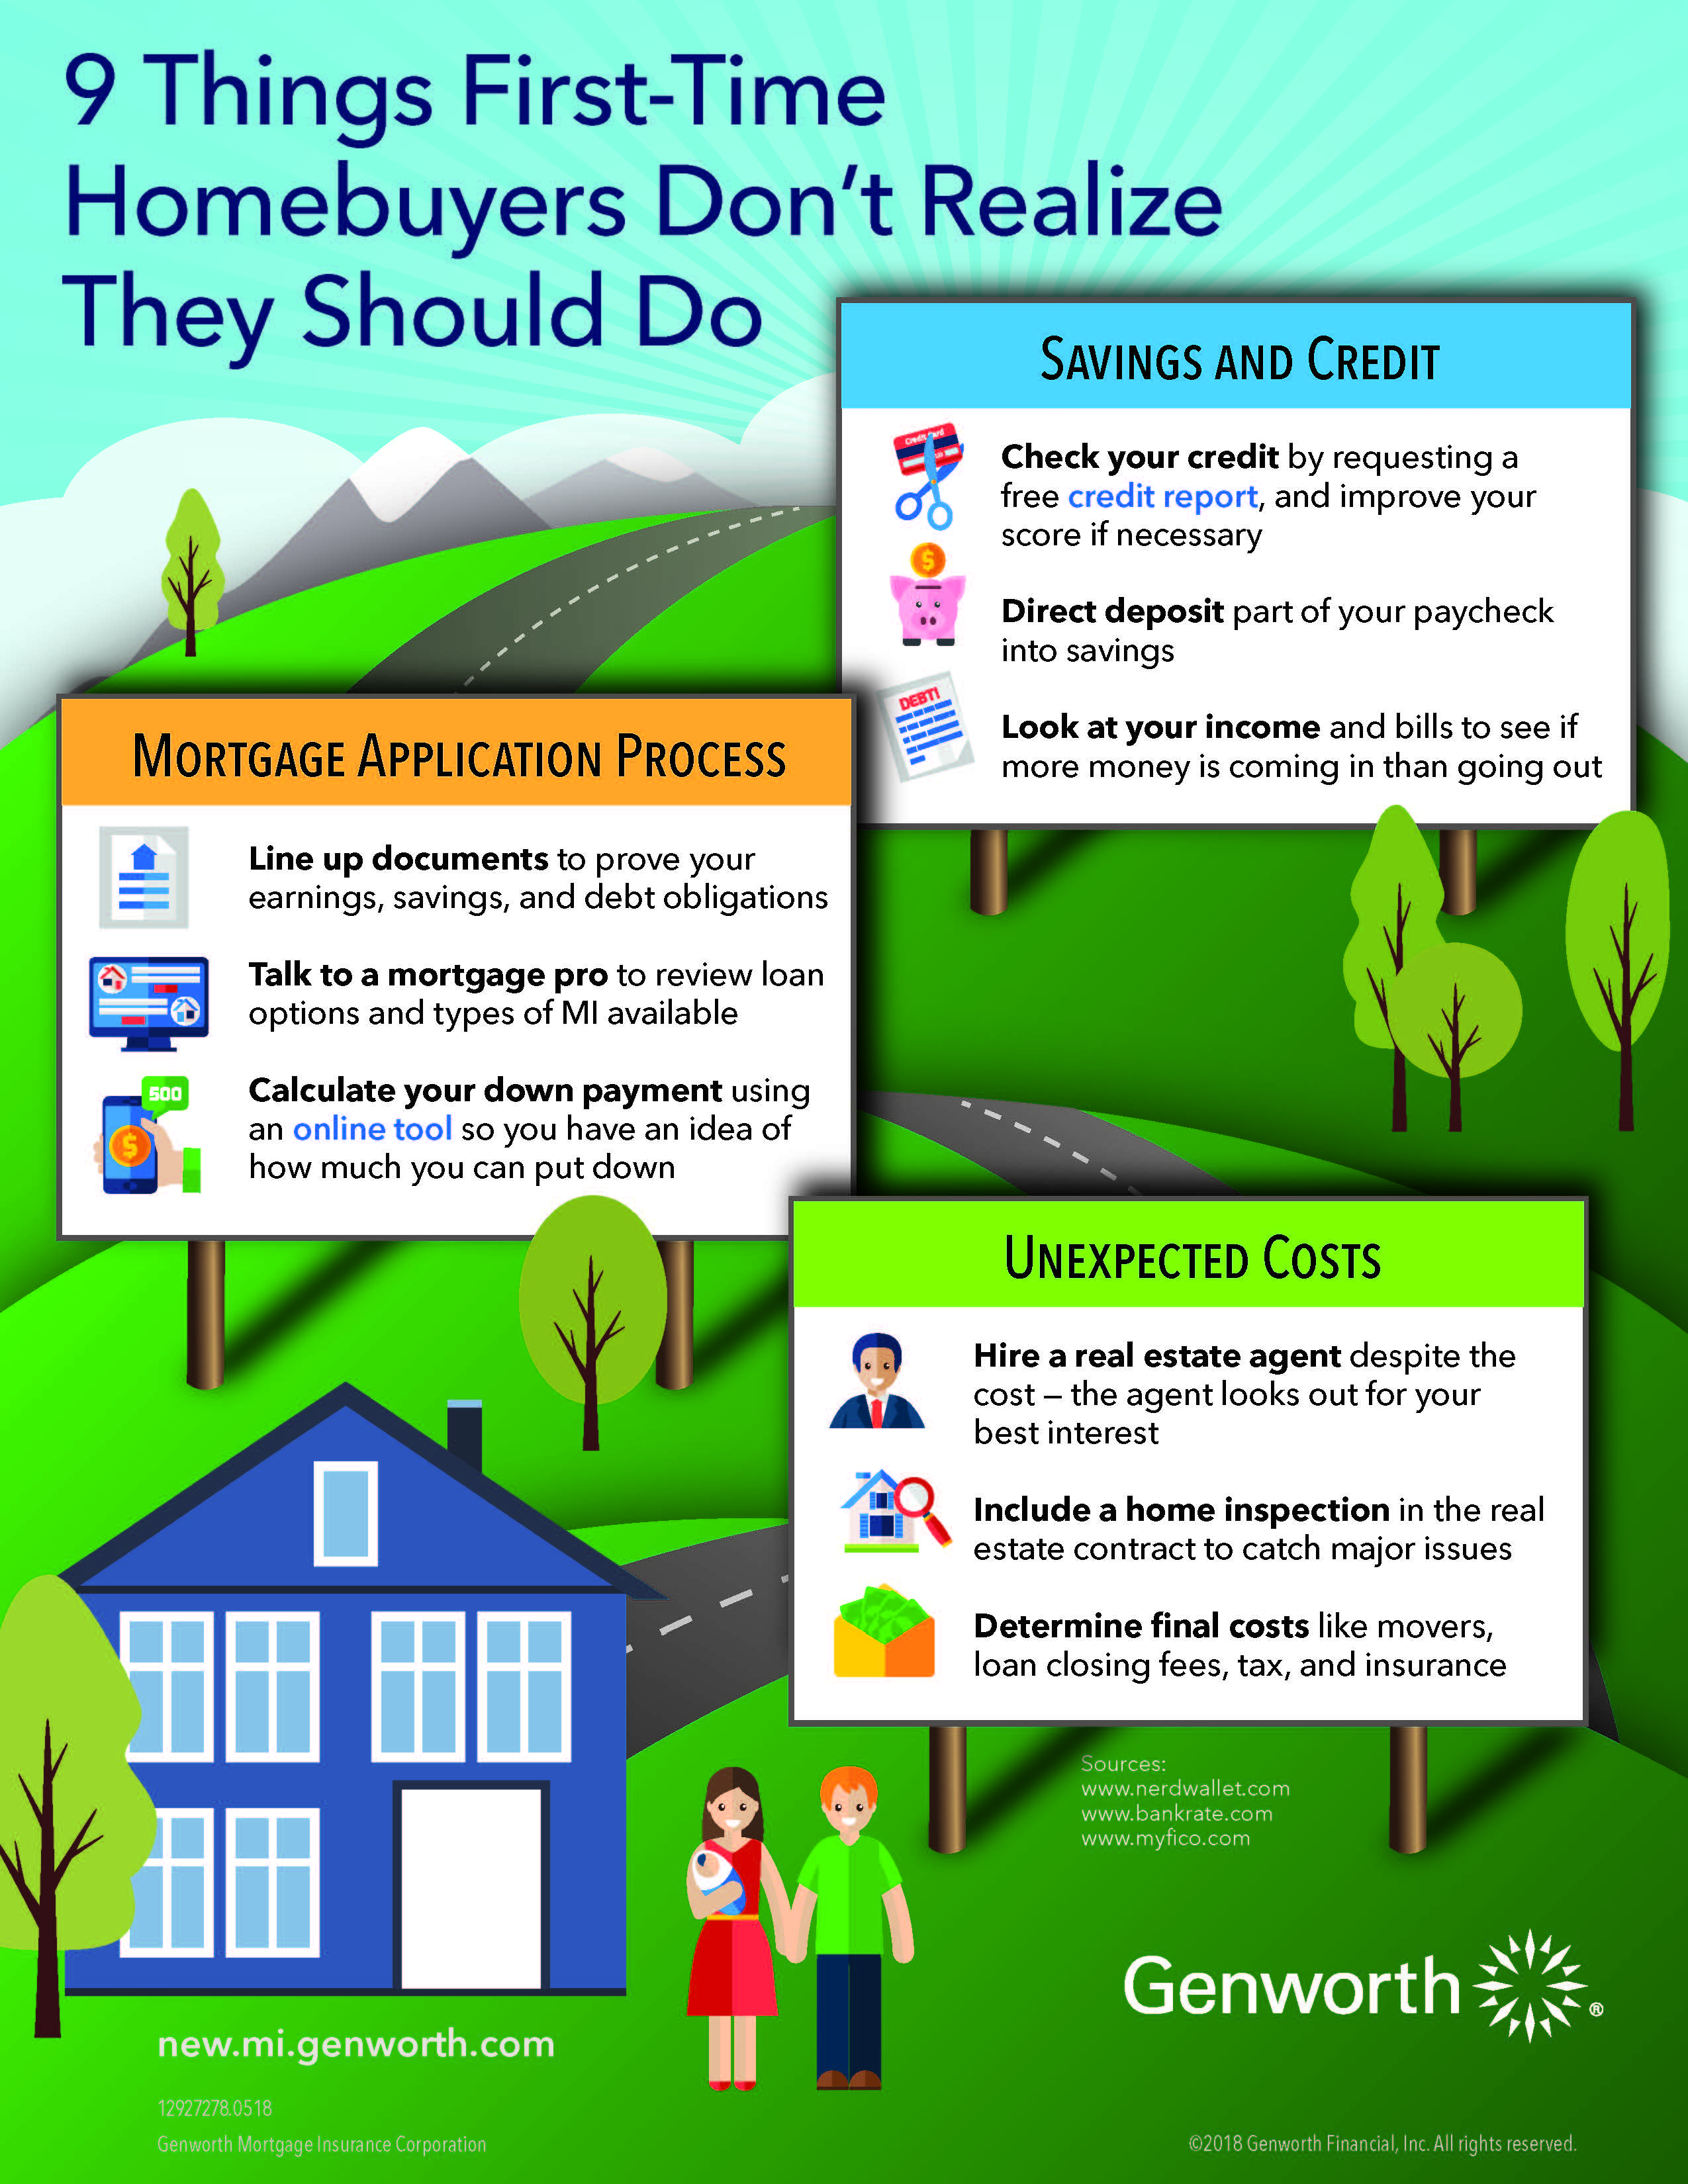 Things First-Time Homebuyers Don't Realize Infographic